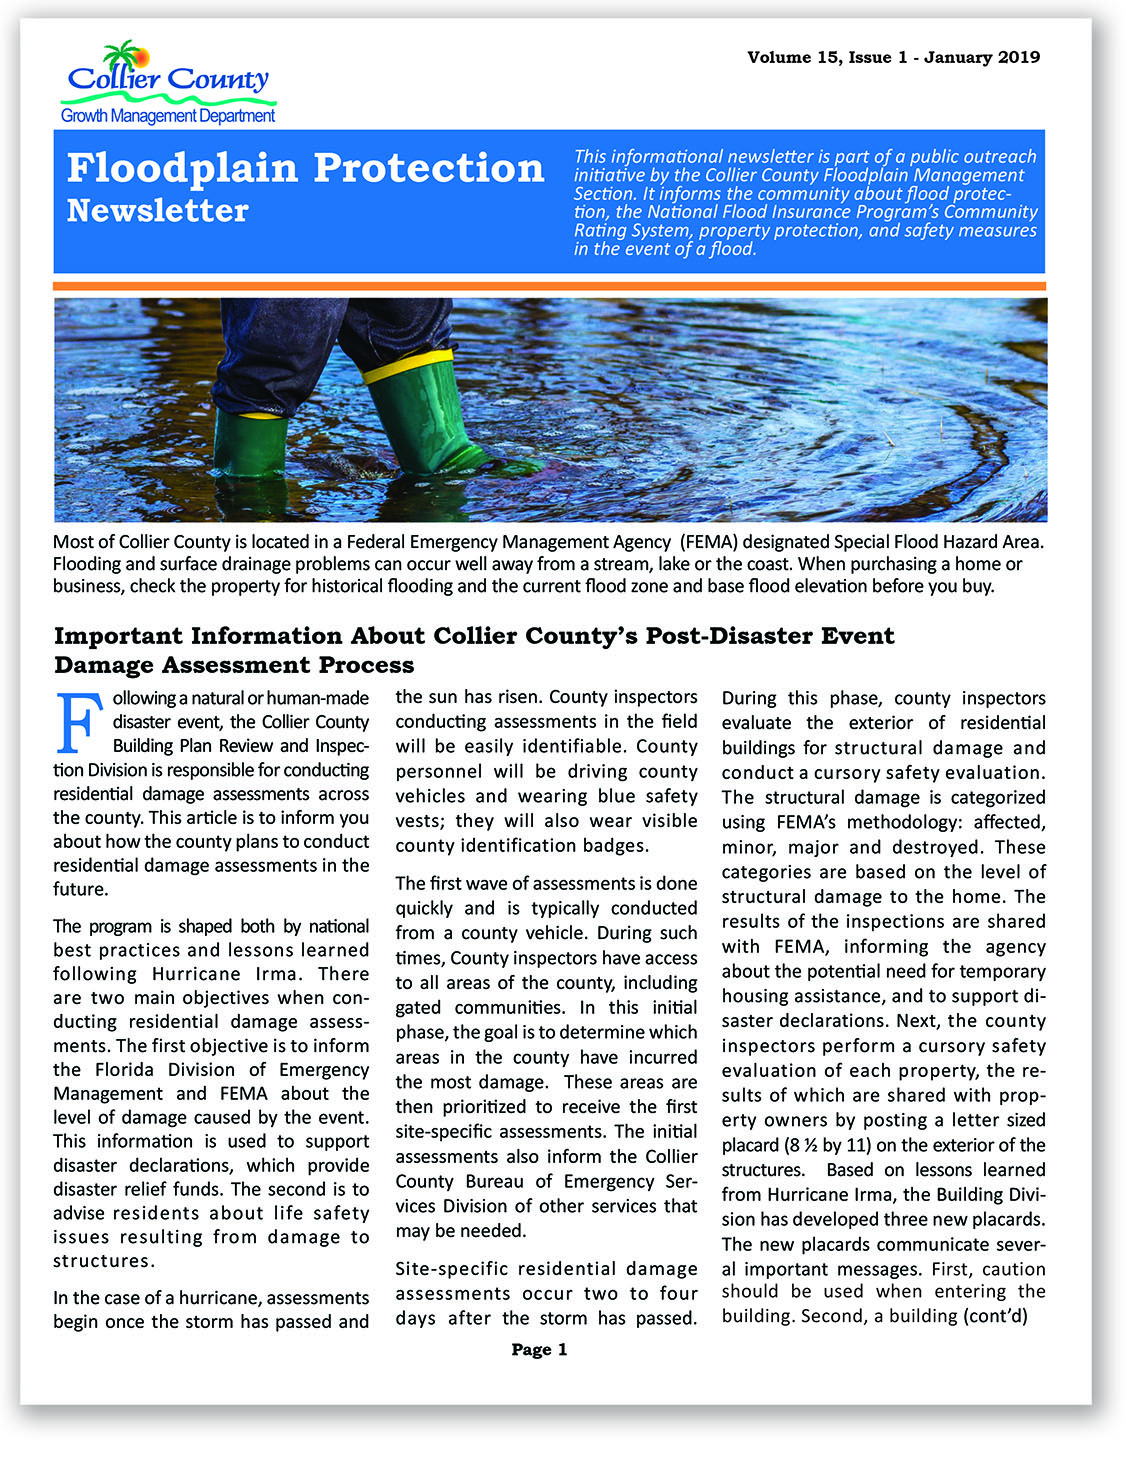 FLOODPLAIN NEWSLETTER JAN 30 FINAL-1